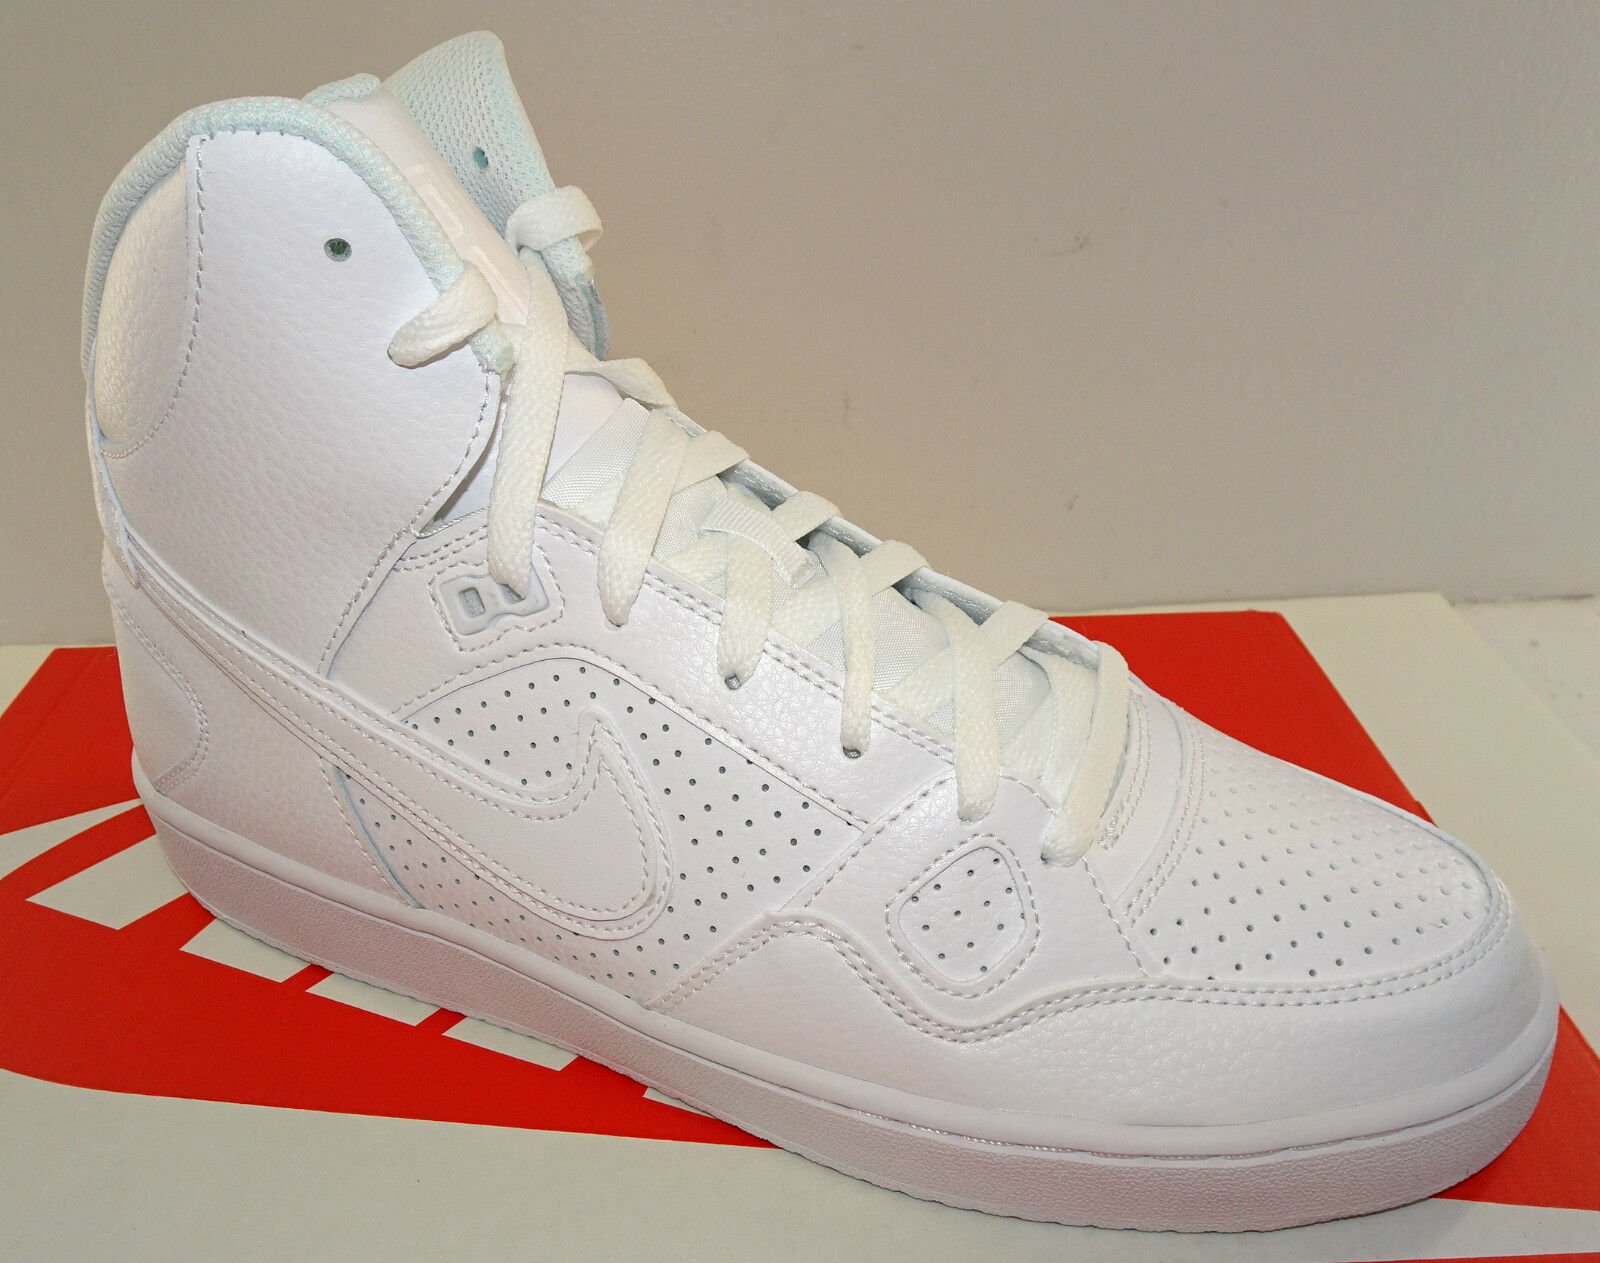 NIKE Son Of Force Mid Men's Athletic Shoe  616281-102   White   NEW  Seasonal price cuts, discount benefits